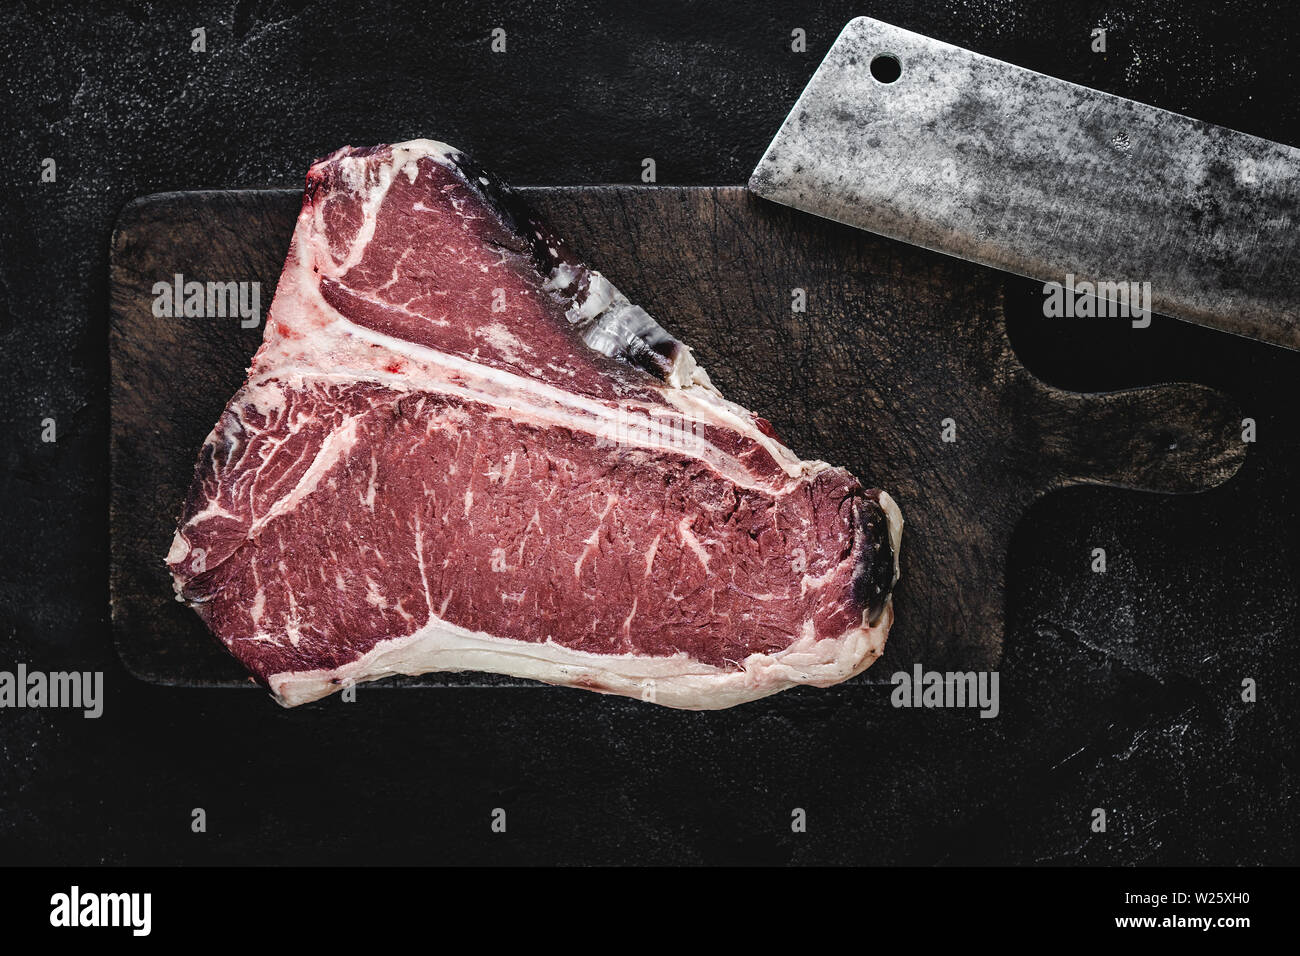 Prime Dry Aged Beef Raw T-bone Steak on Vintage Cutting Board Stock Photo